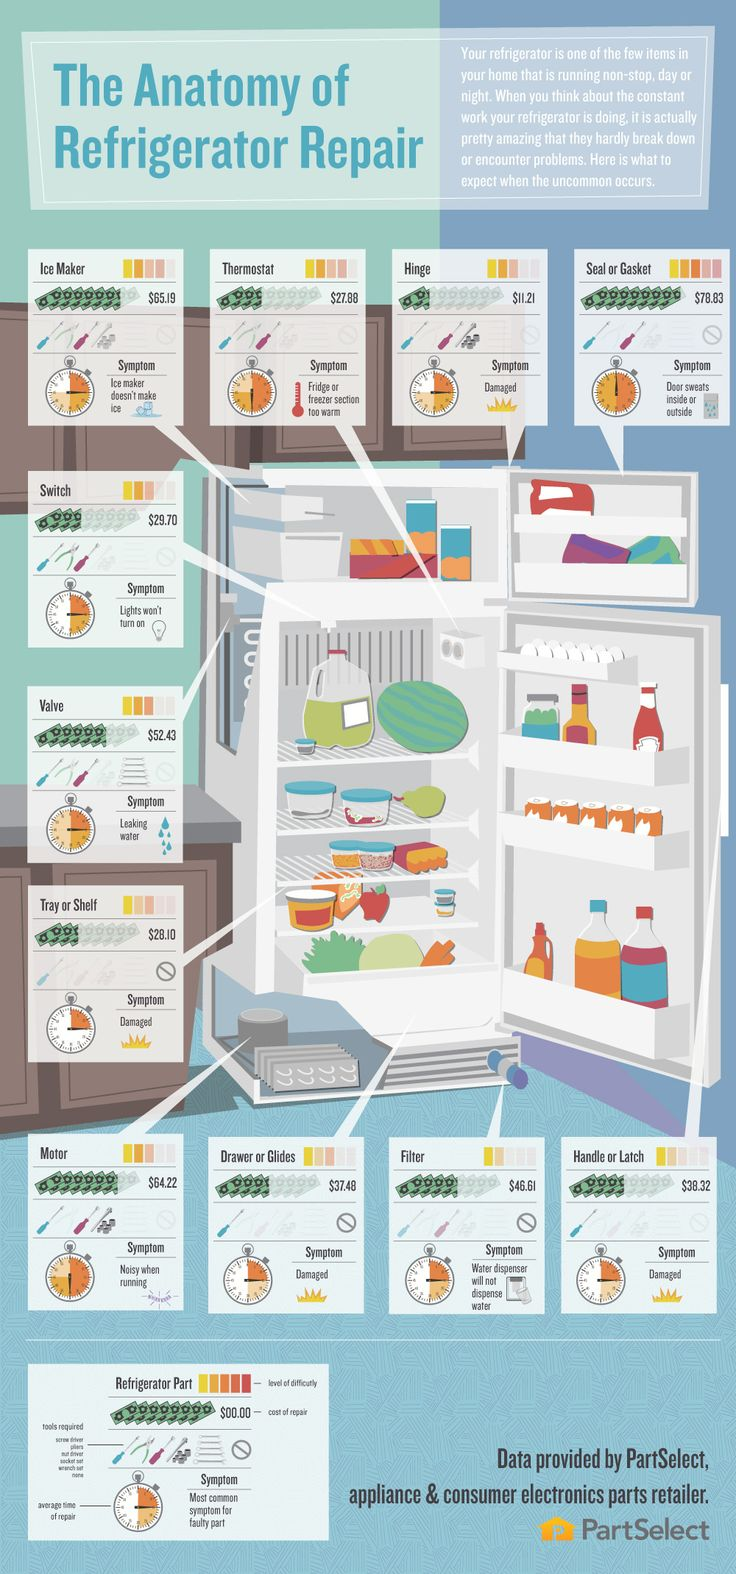 The Anatomy of Refrigerator Repair - understand what is broke and how much the replacement part should cost before you talk to a repairman!